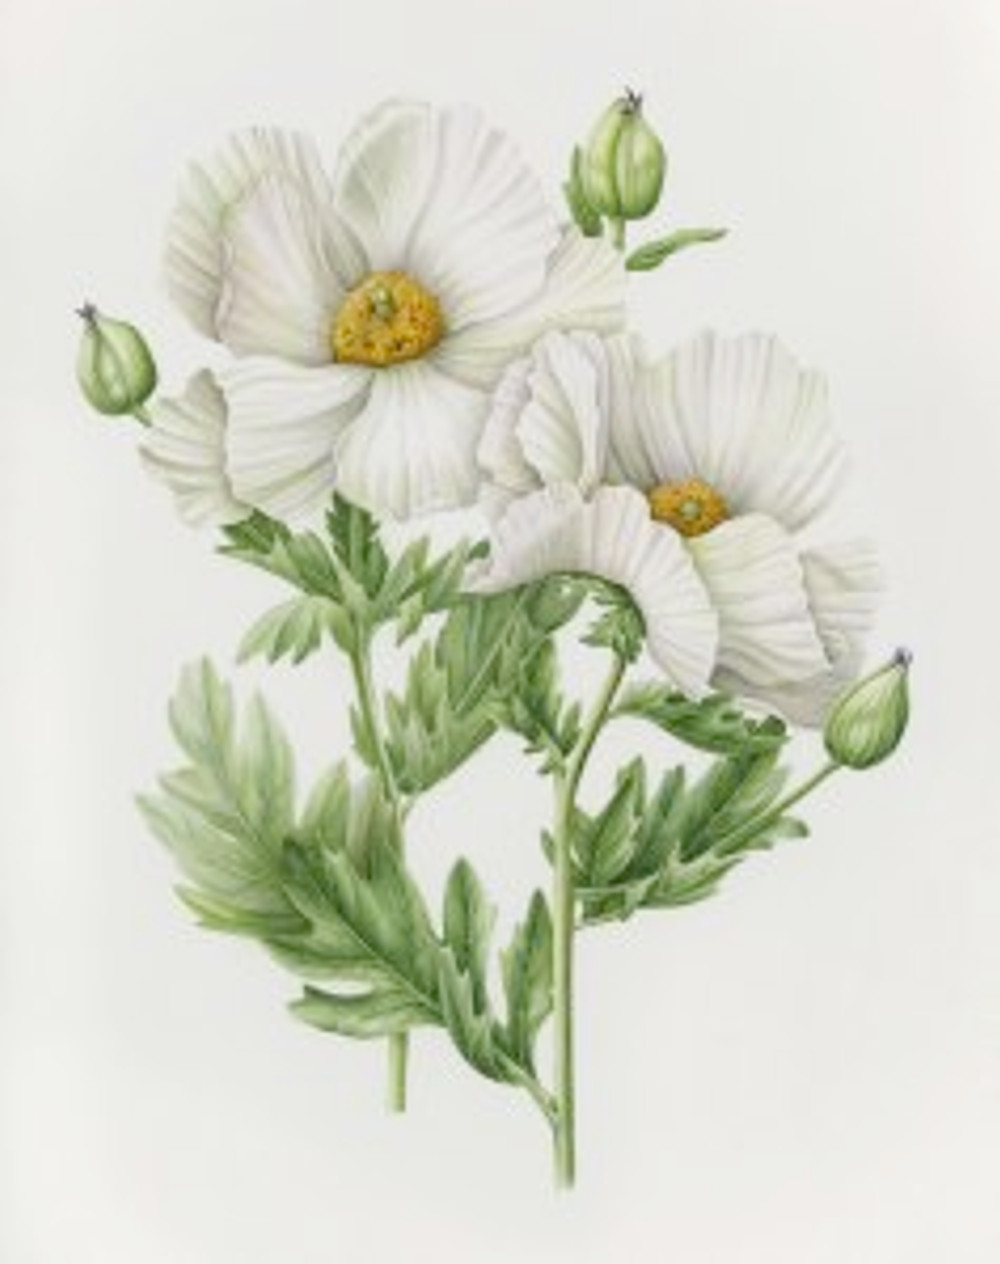 Romneya coulteri, watercolor on paper by Joan Keesey, © 2016, all rights reserved.